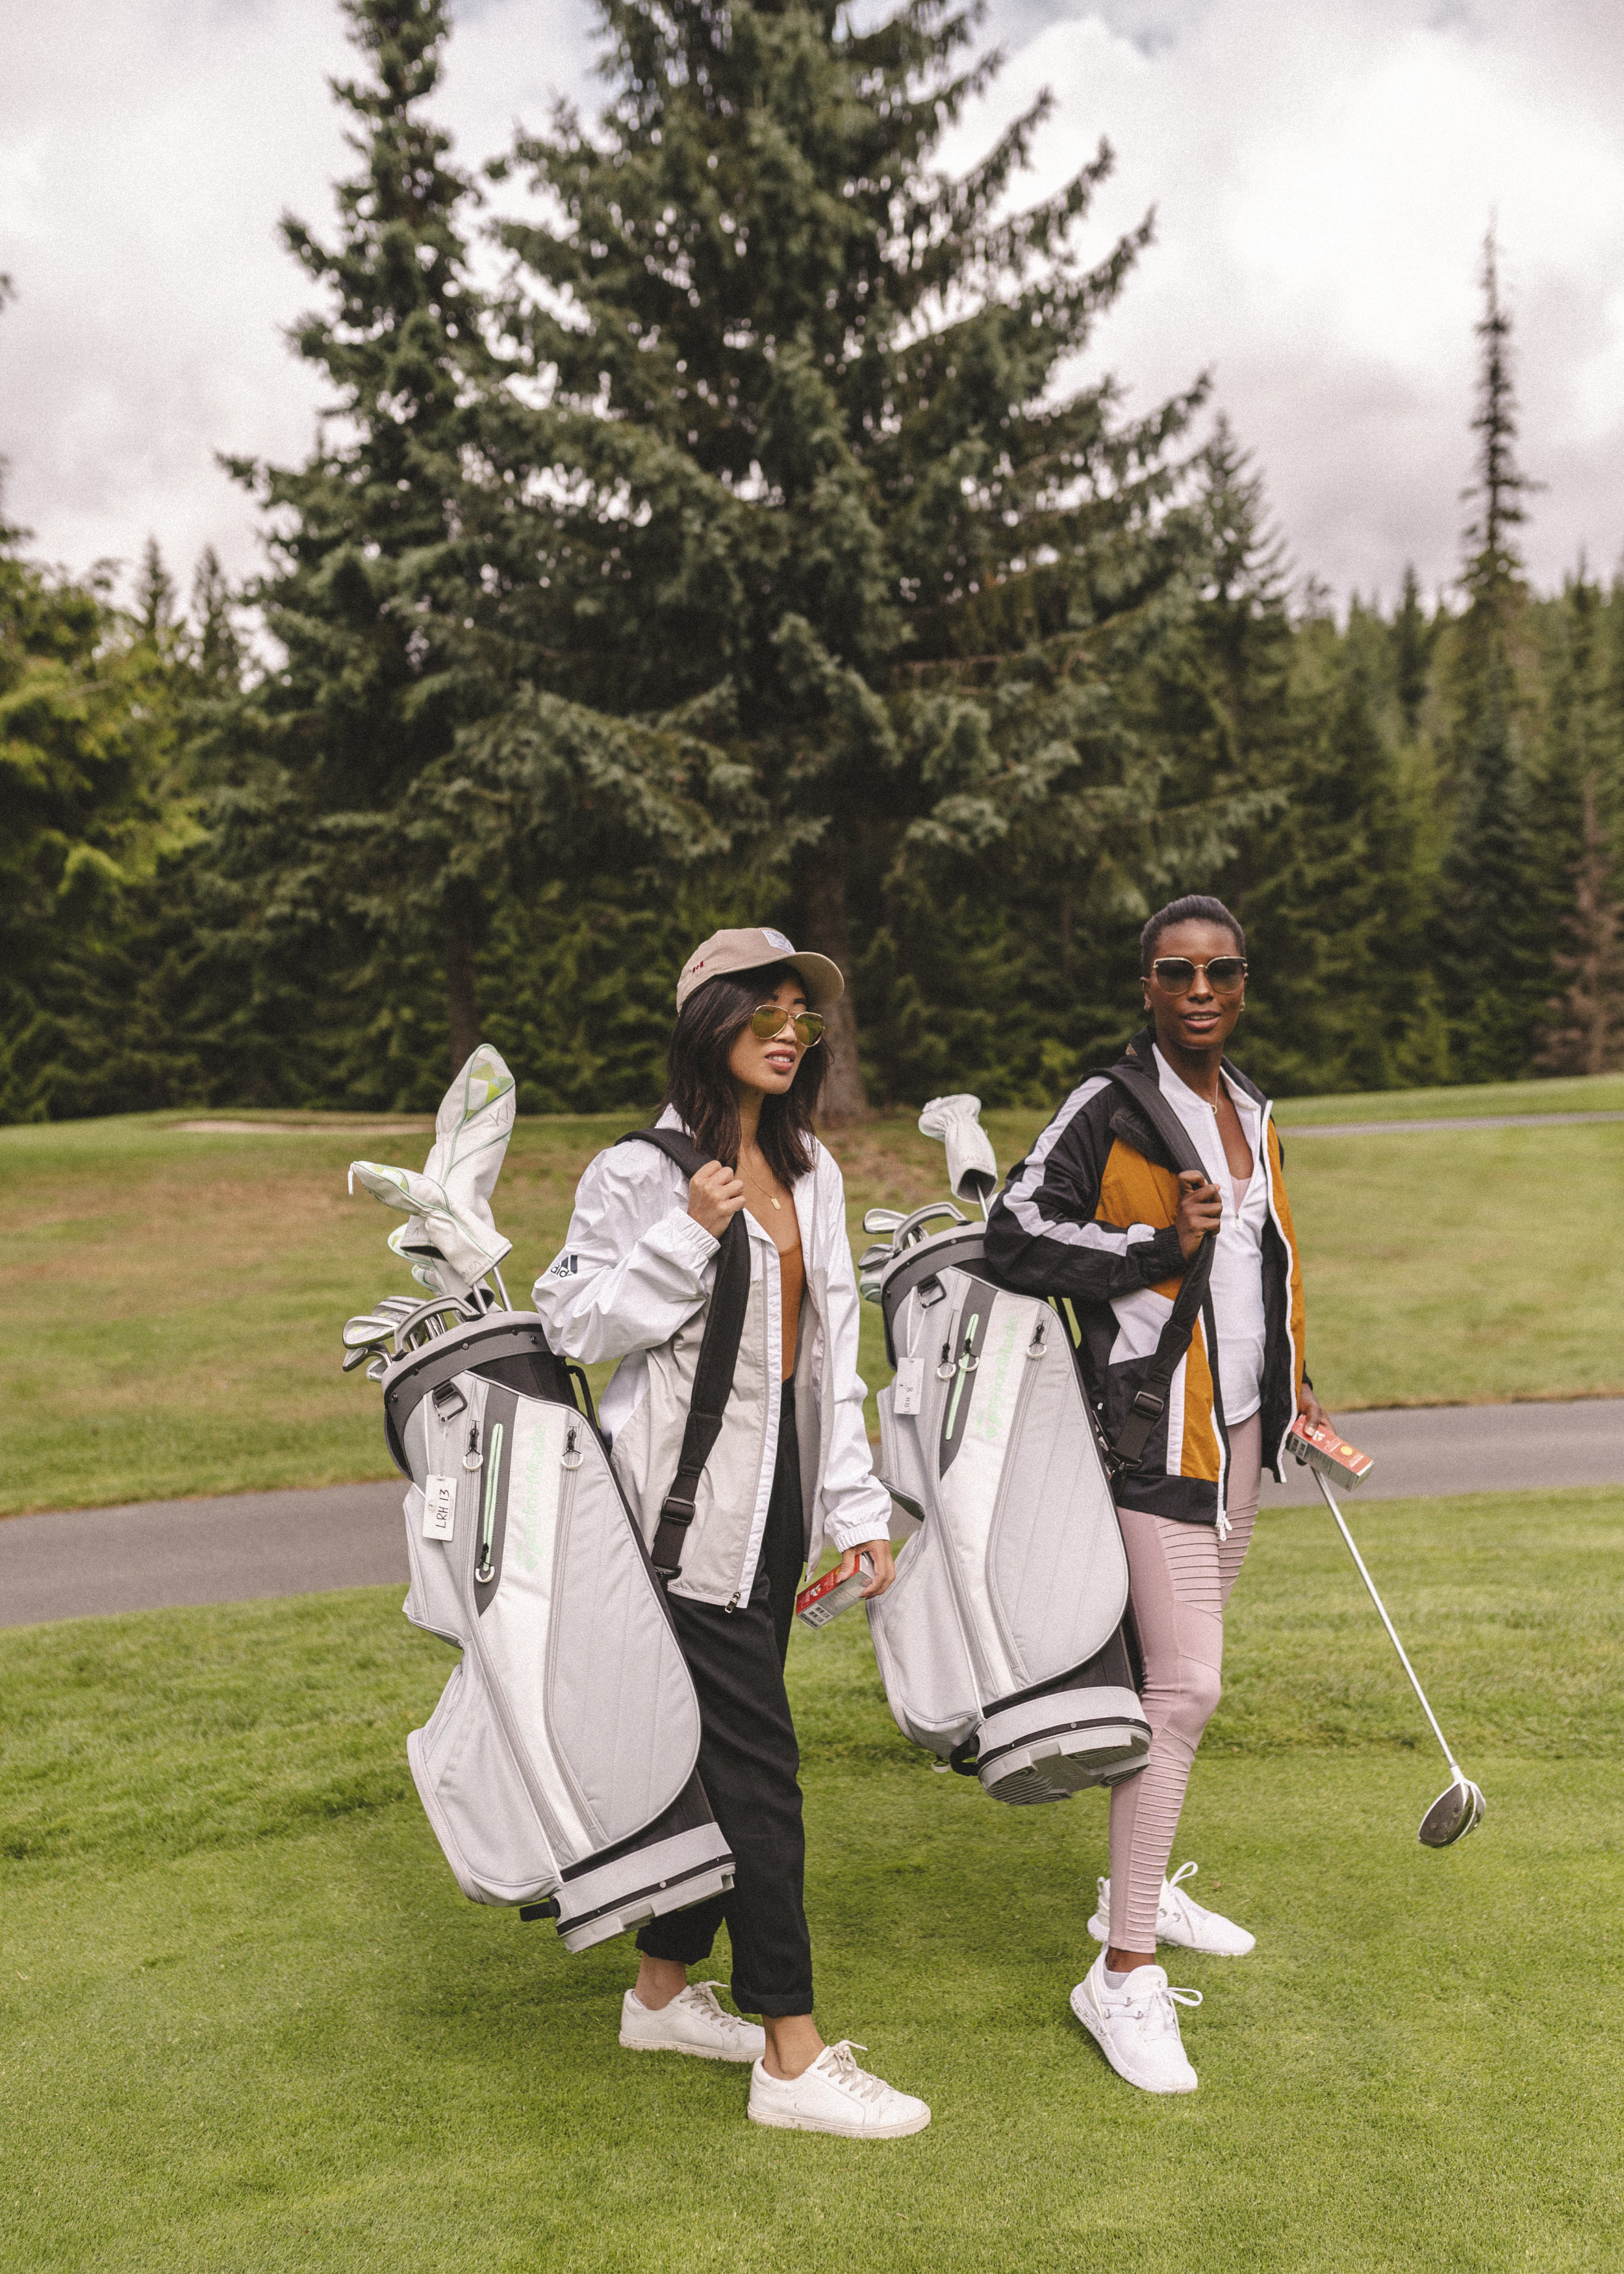 golf-whistler-by-lisa-linh